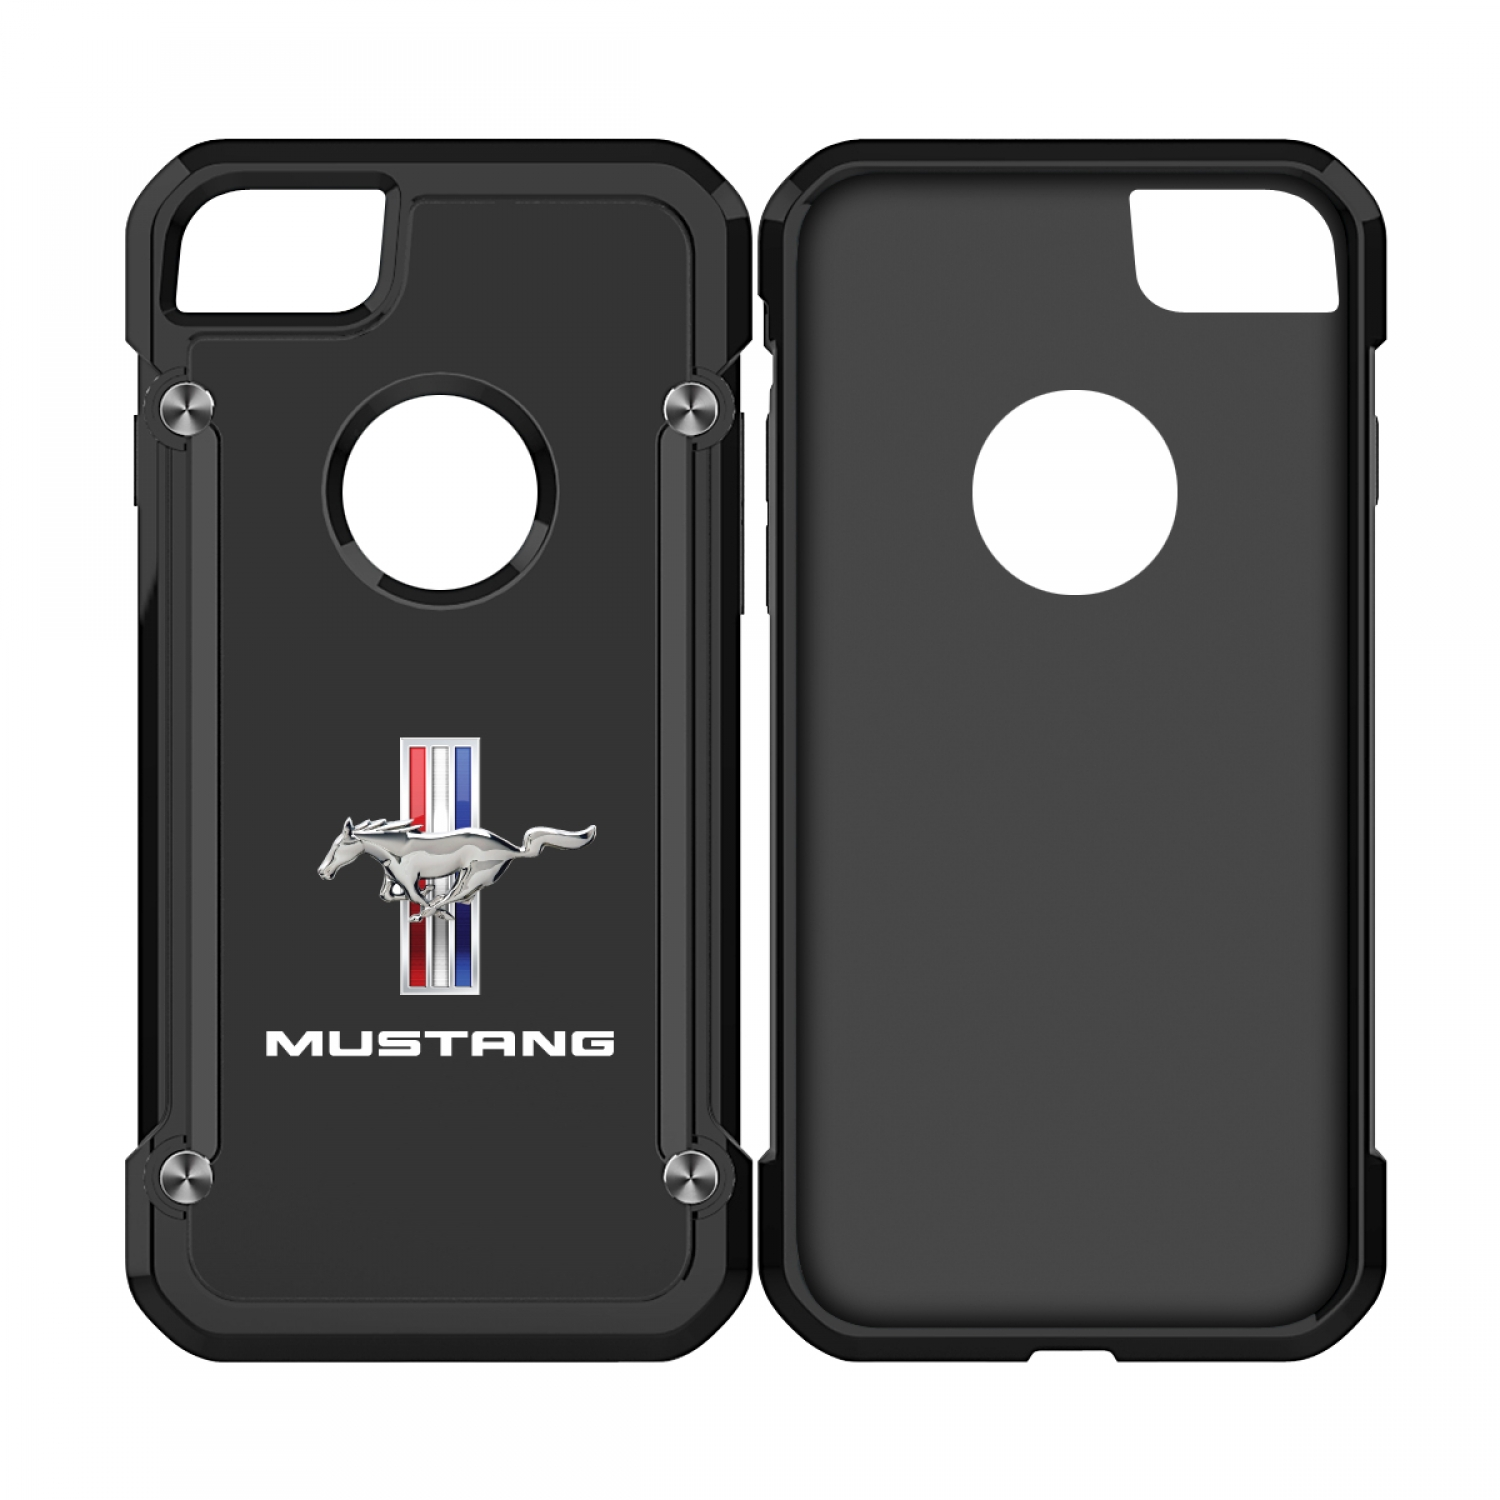 Ford Mustang Tri-Bar iPhone 7 iPhone 8 TPU Shockproof Black Cell Phone Case